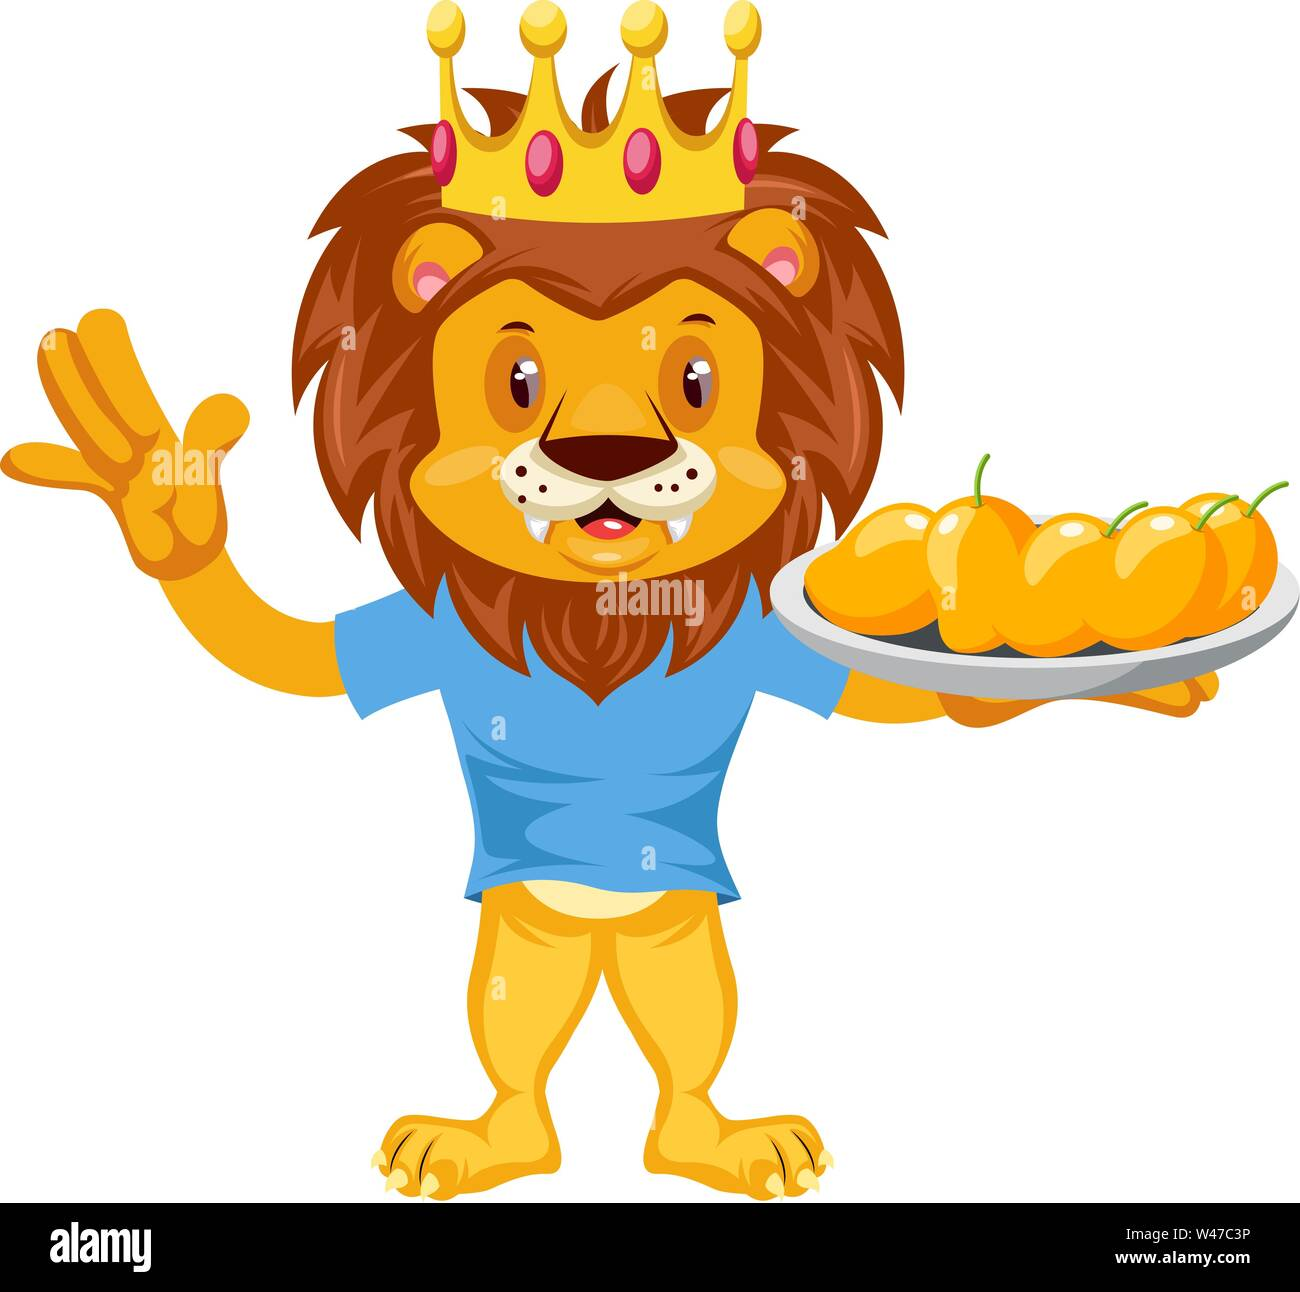 Lion With Mangos Illustration Vector On White Background Stock Vector Image Art Alamy Download a free preview or high quality adobe illustrator ai, eps, pdf and high resolution jpeg versions. alamy